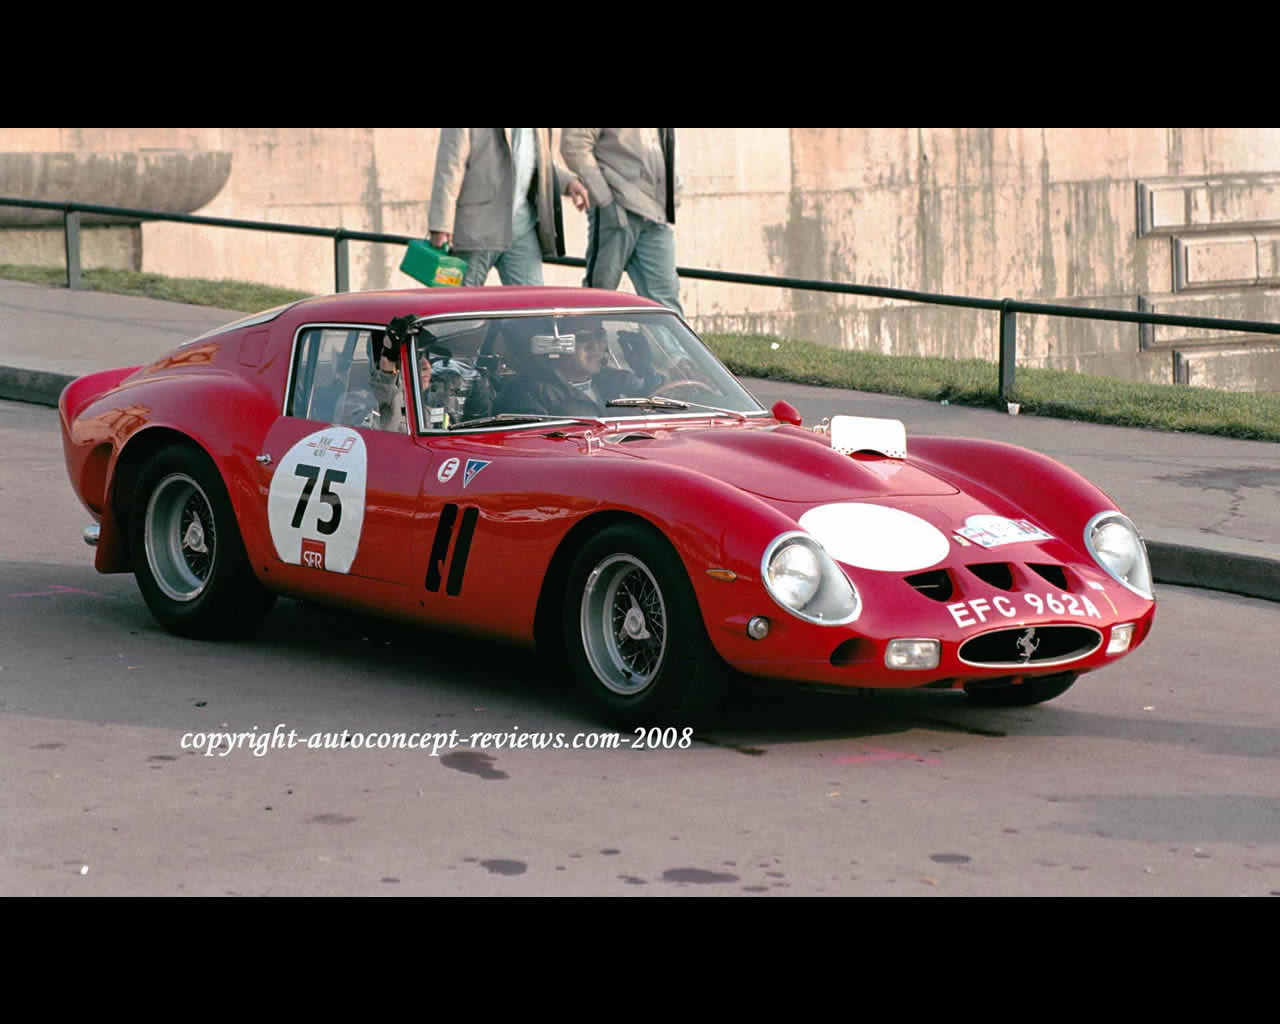 ferrari 250 gto gran turismo omologato 1962 1964. Black Bedroom Furniture Sets. Home Design Ideas